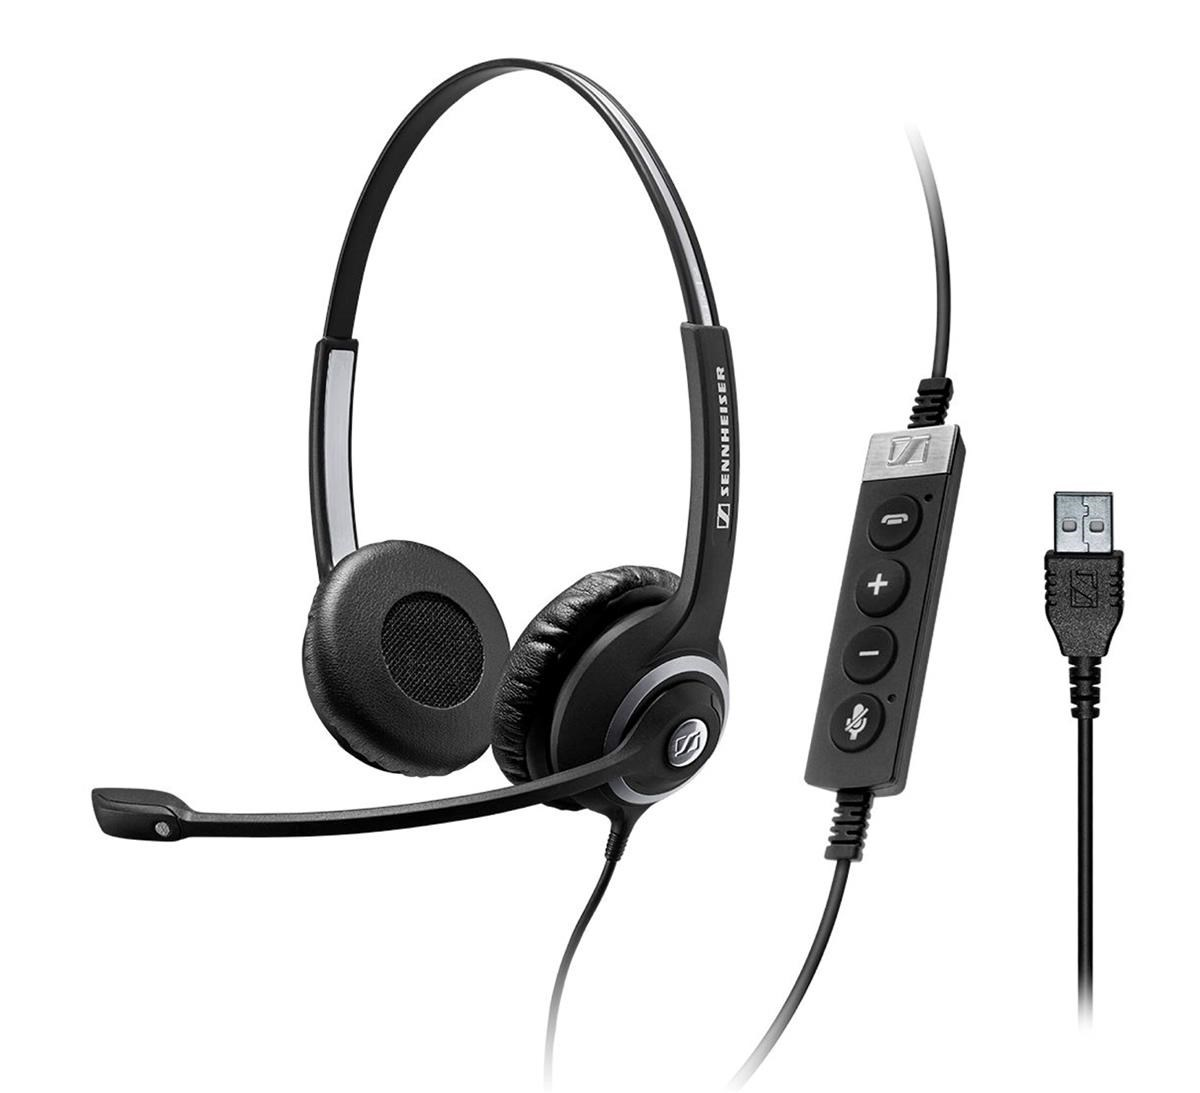 2fc2a2aec82 Sennheiser SC 260 USB CTRL II Wired Dual-Sided Headset with  Noise-Cancelling Microphone